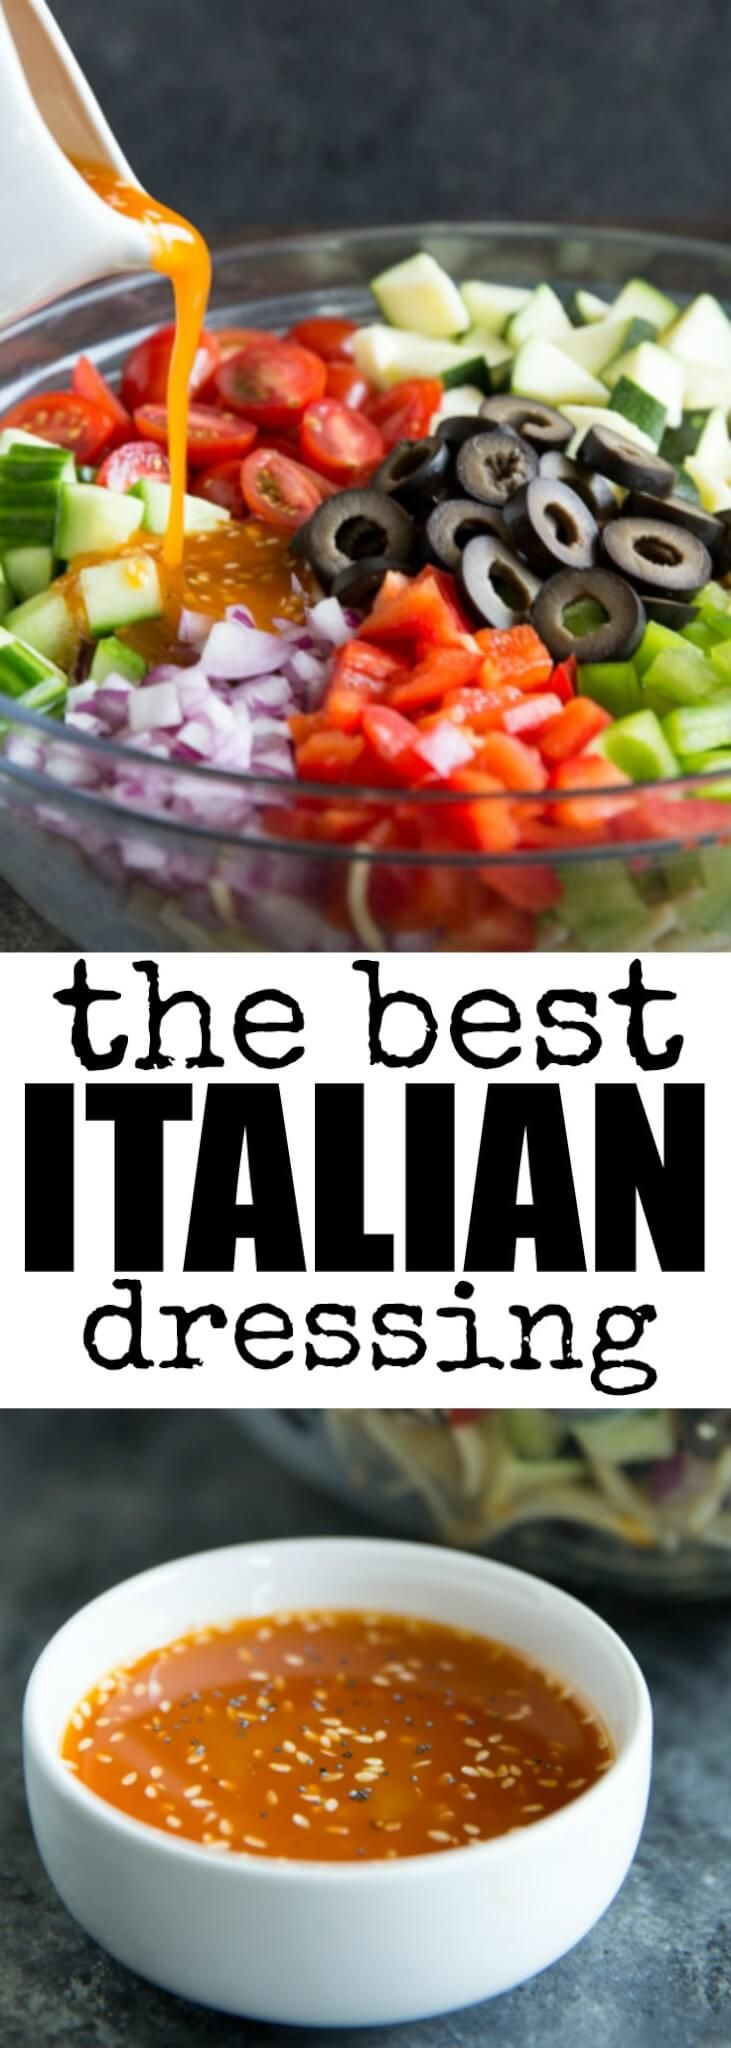 The Best Homemade Italian Dressing Recipe Culinary Hill Recipe Homemade Italian Dressing Italian Dressing Recipes Italian Dressing